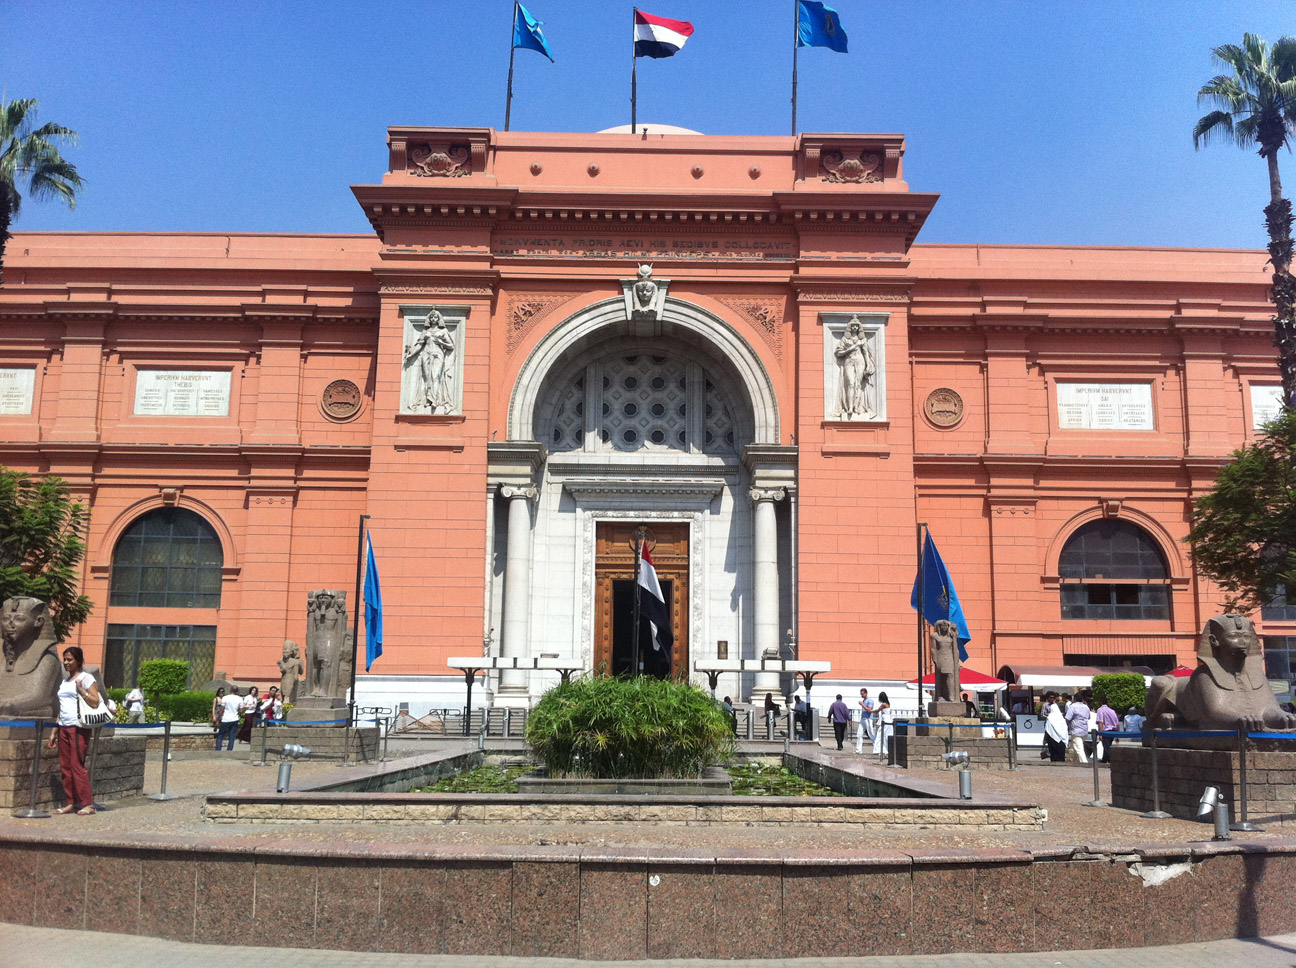 Building of the National Egyptian Museum